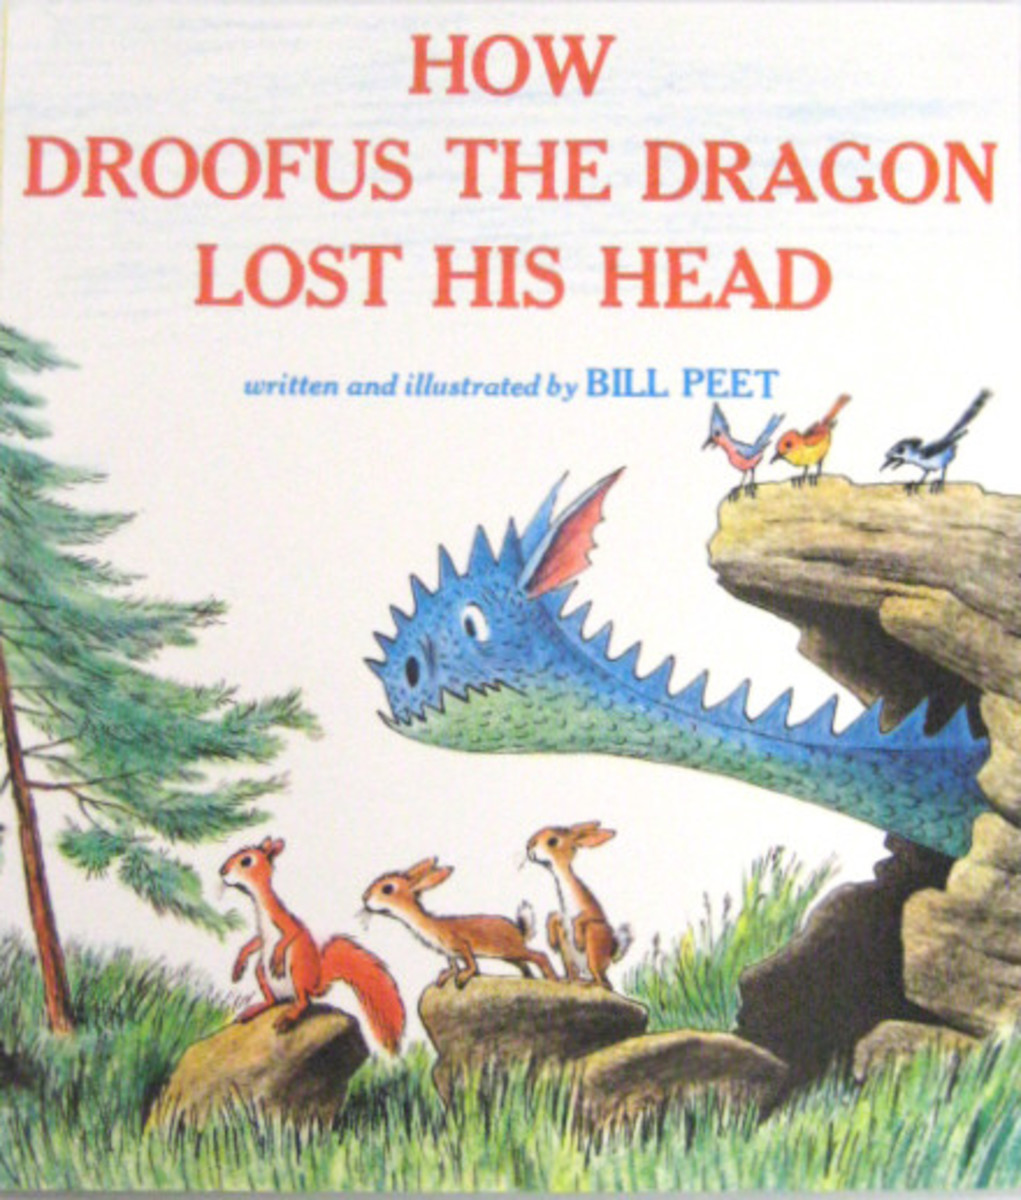 Droofus the Dragon loses his head, and how he did it.